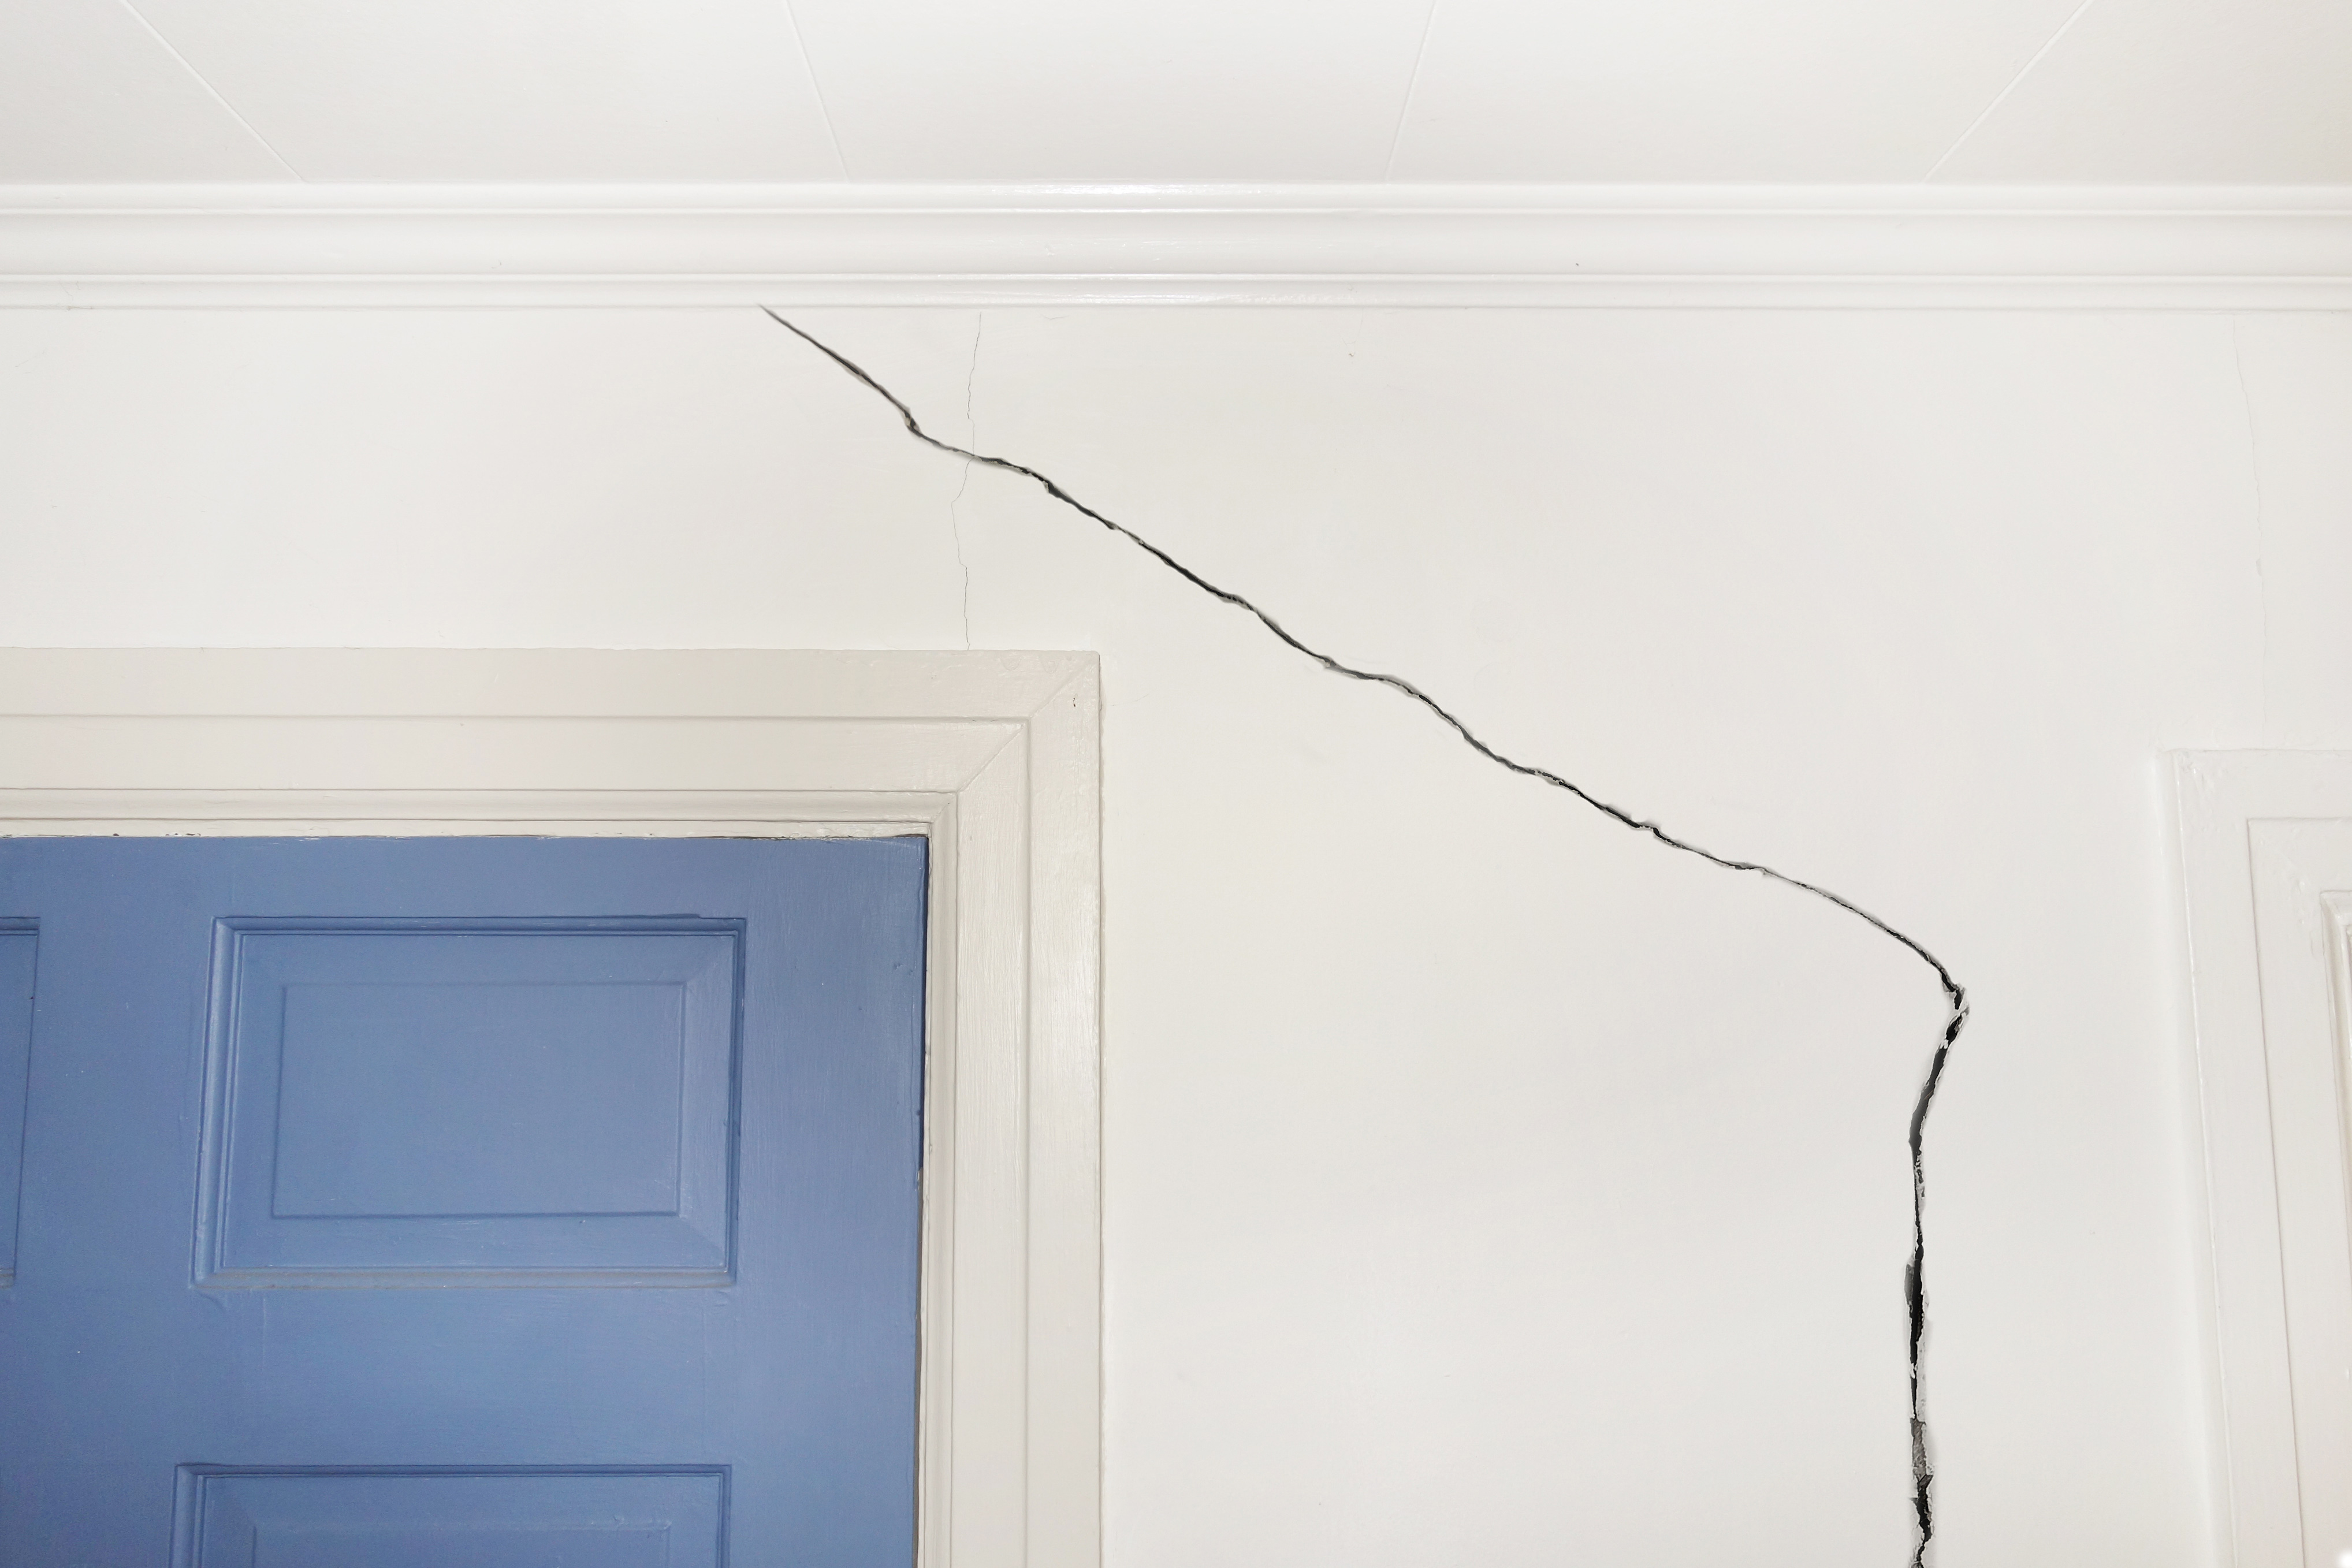 Tell-tale cracks around windows and doors can suggest structural problems. Image: zimmytws/Shutterstock